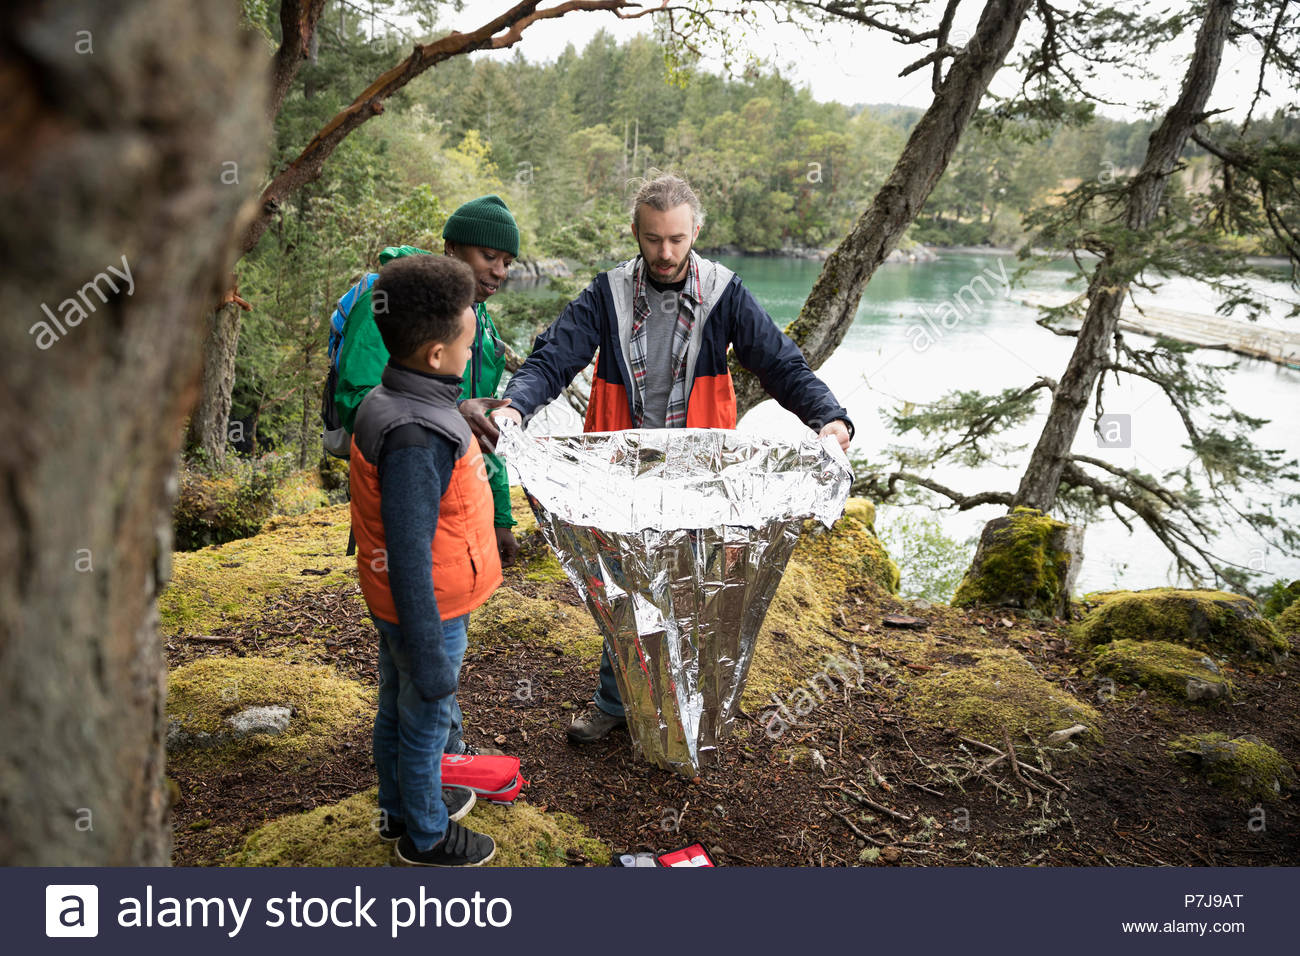 Trail guide showing thermal blanket to father and son in woods - Stock Image